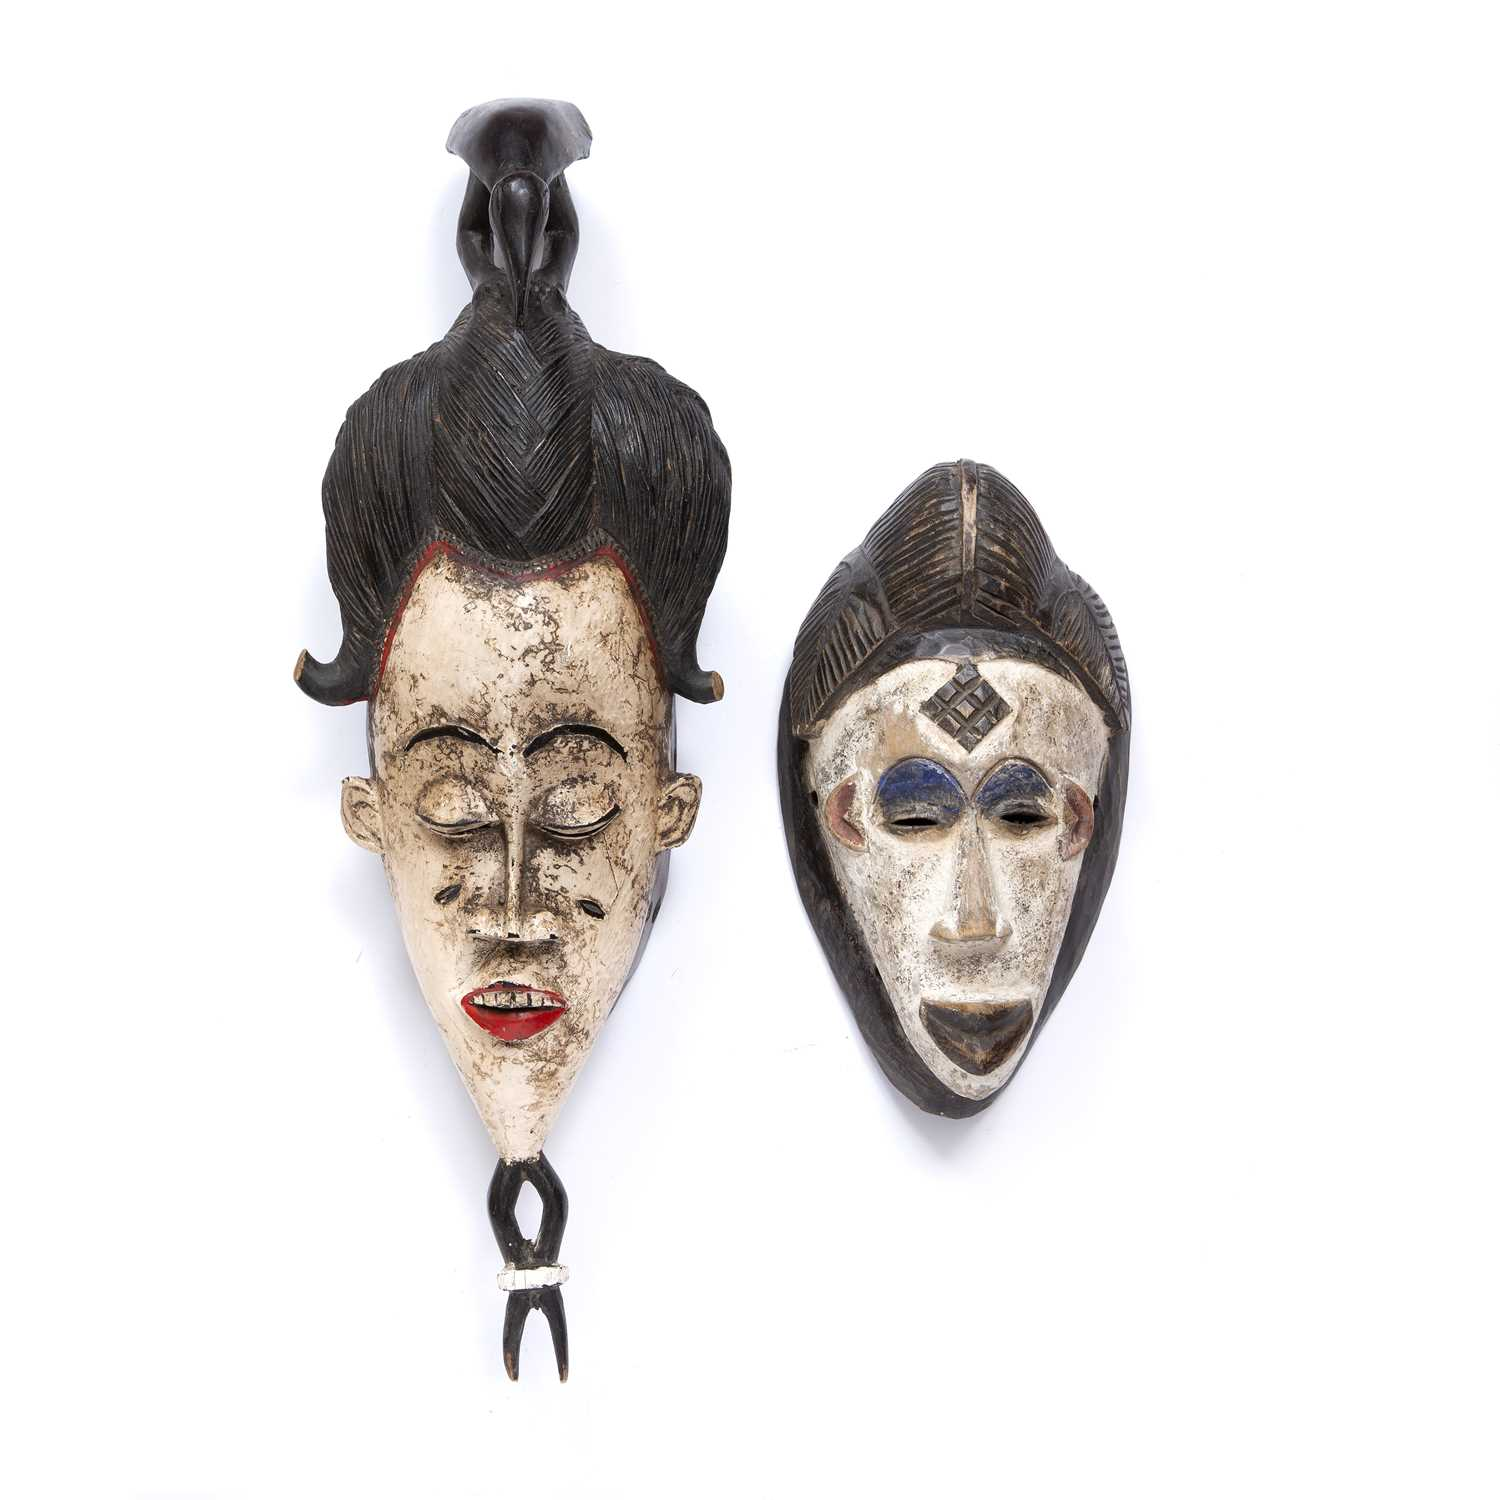 A Baule mask, Ivory Coast, carved wood with high incised coiffure topped by a bird with white and